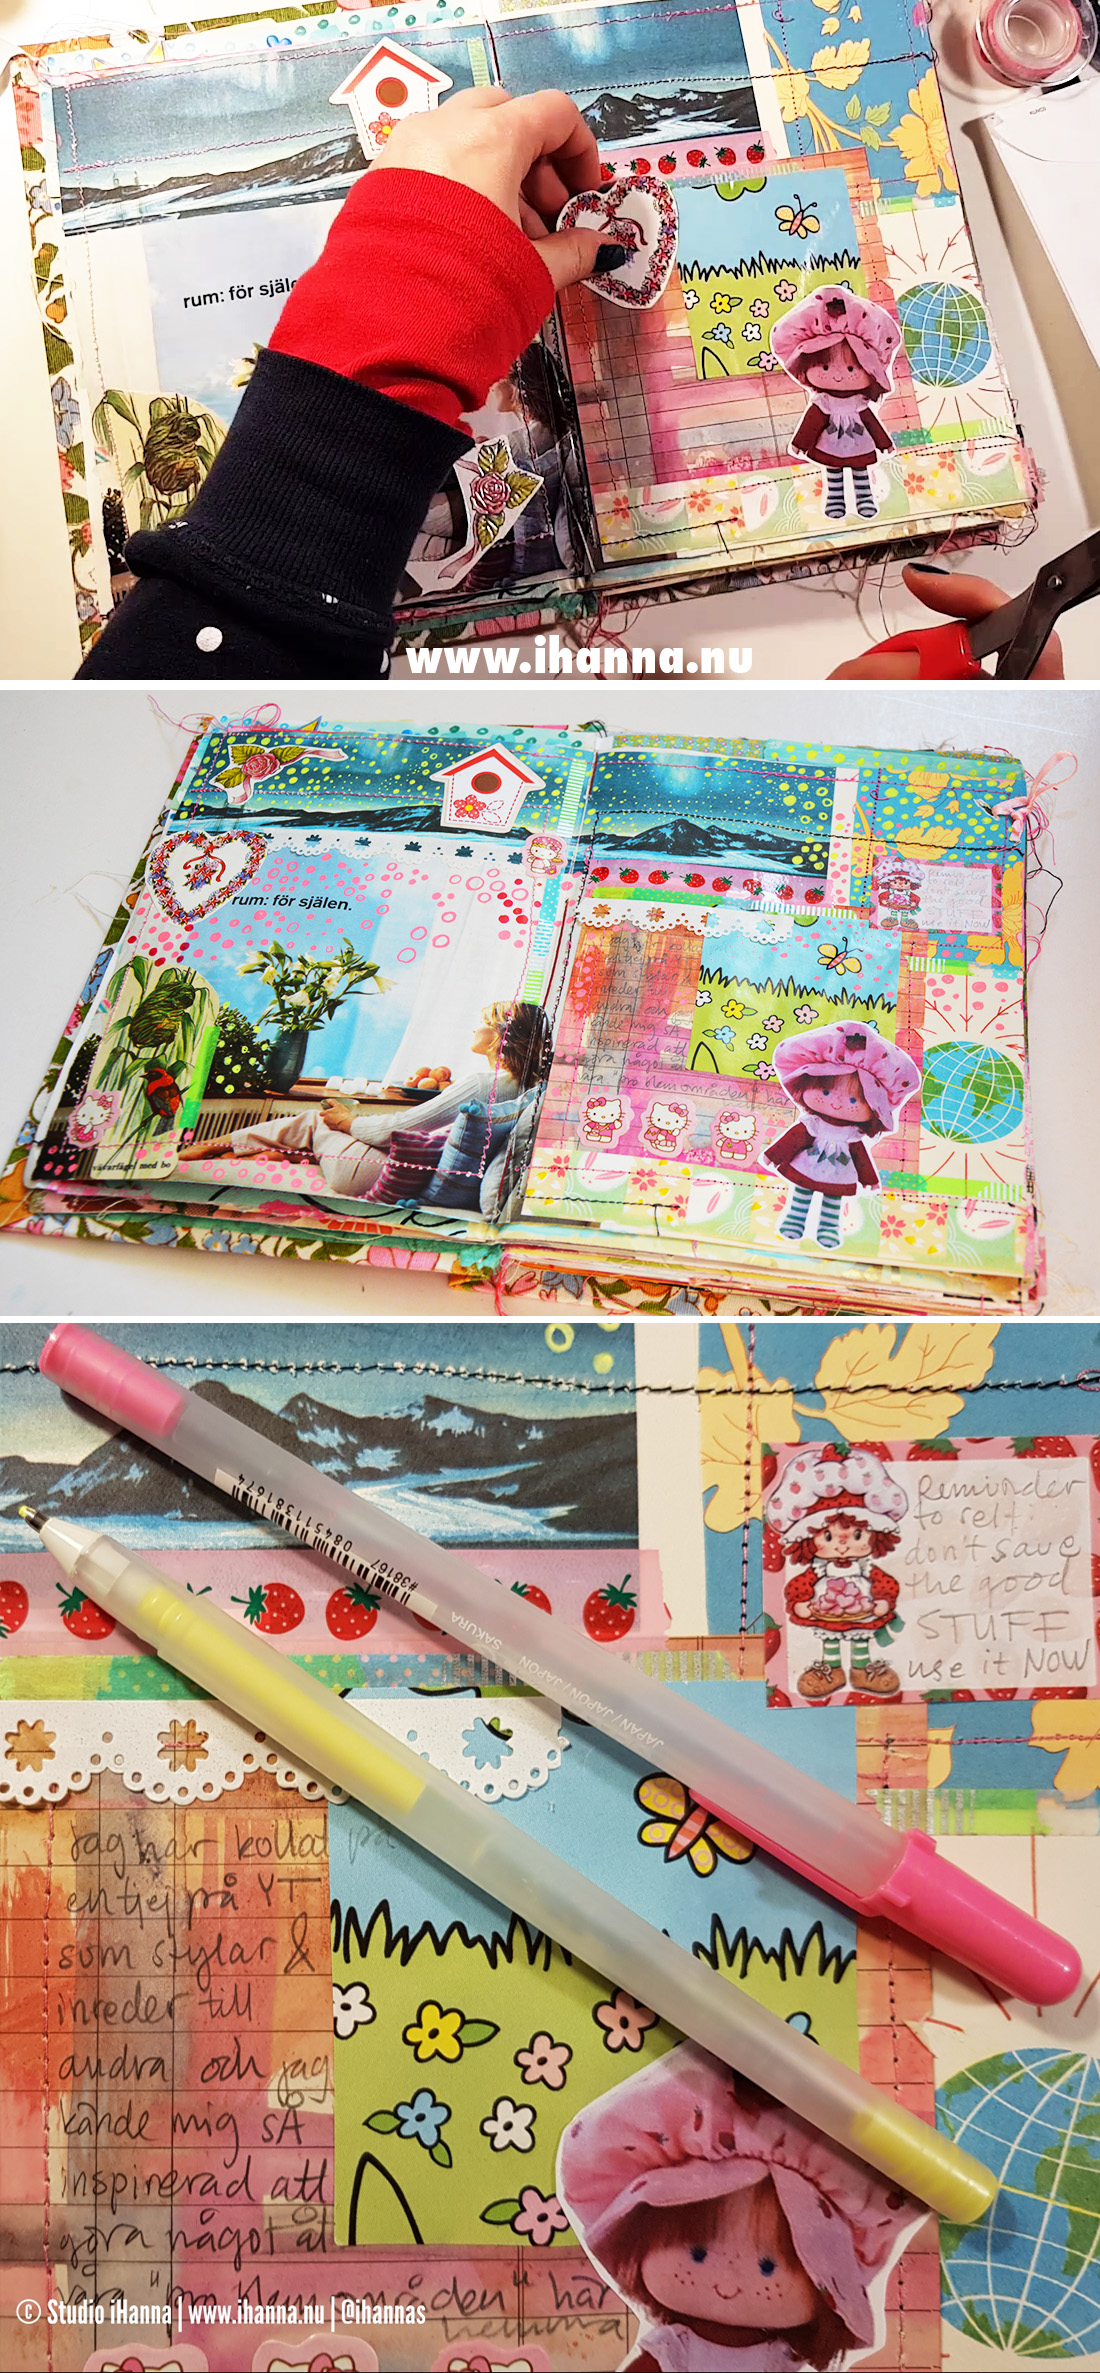 Junk journaling: room for the soul